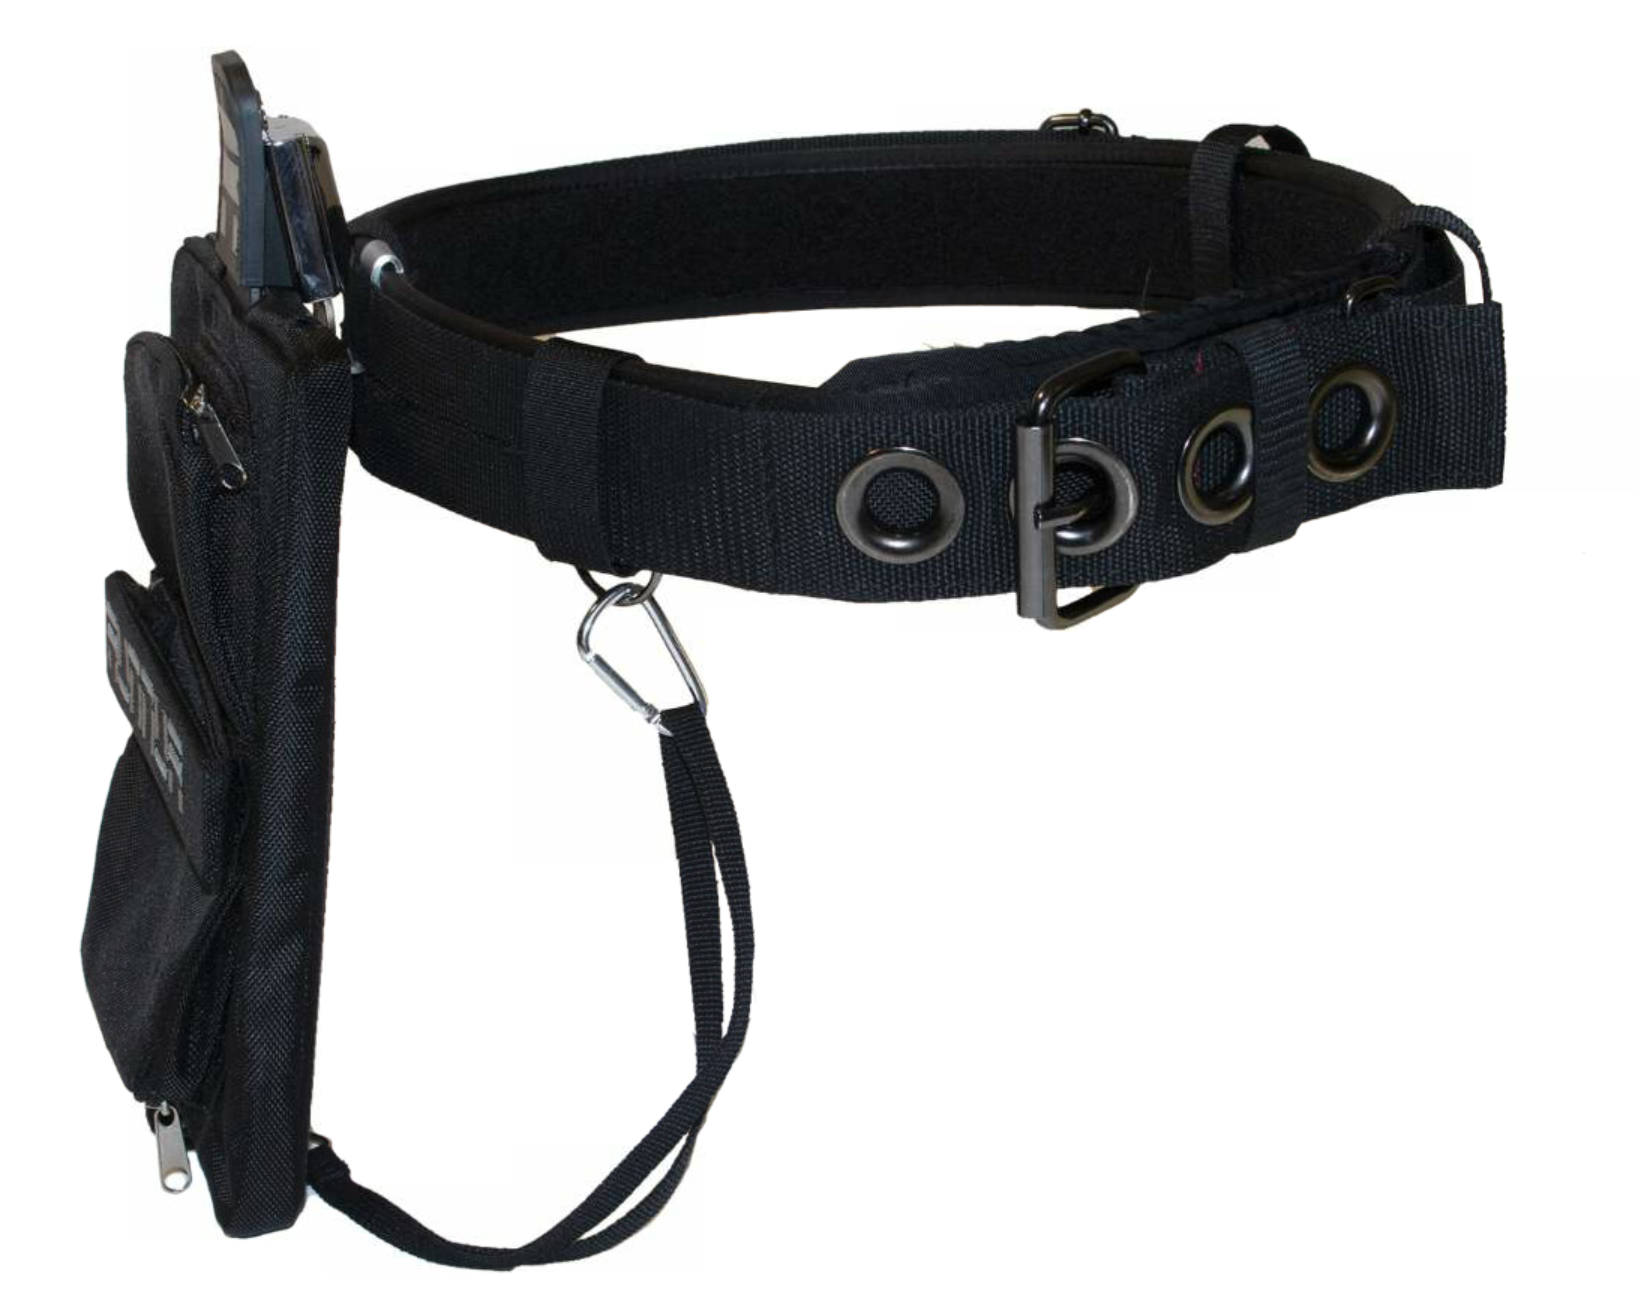 This RUNNER tool belt enables the worker to carry his iPad into the field and keep it close at hand.